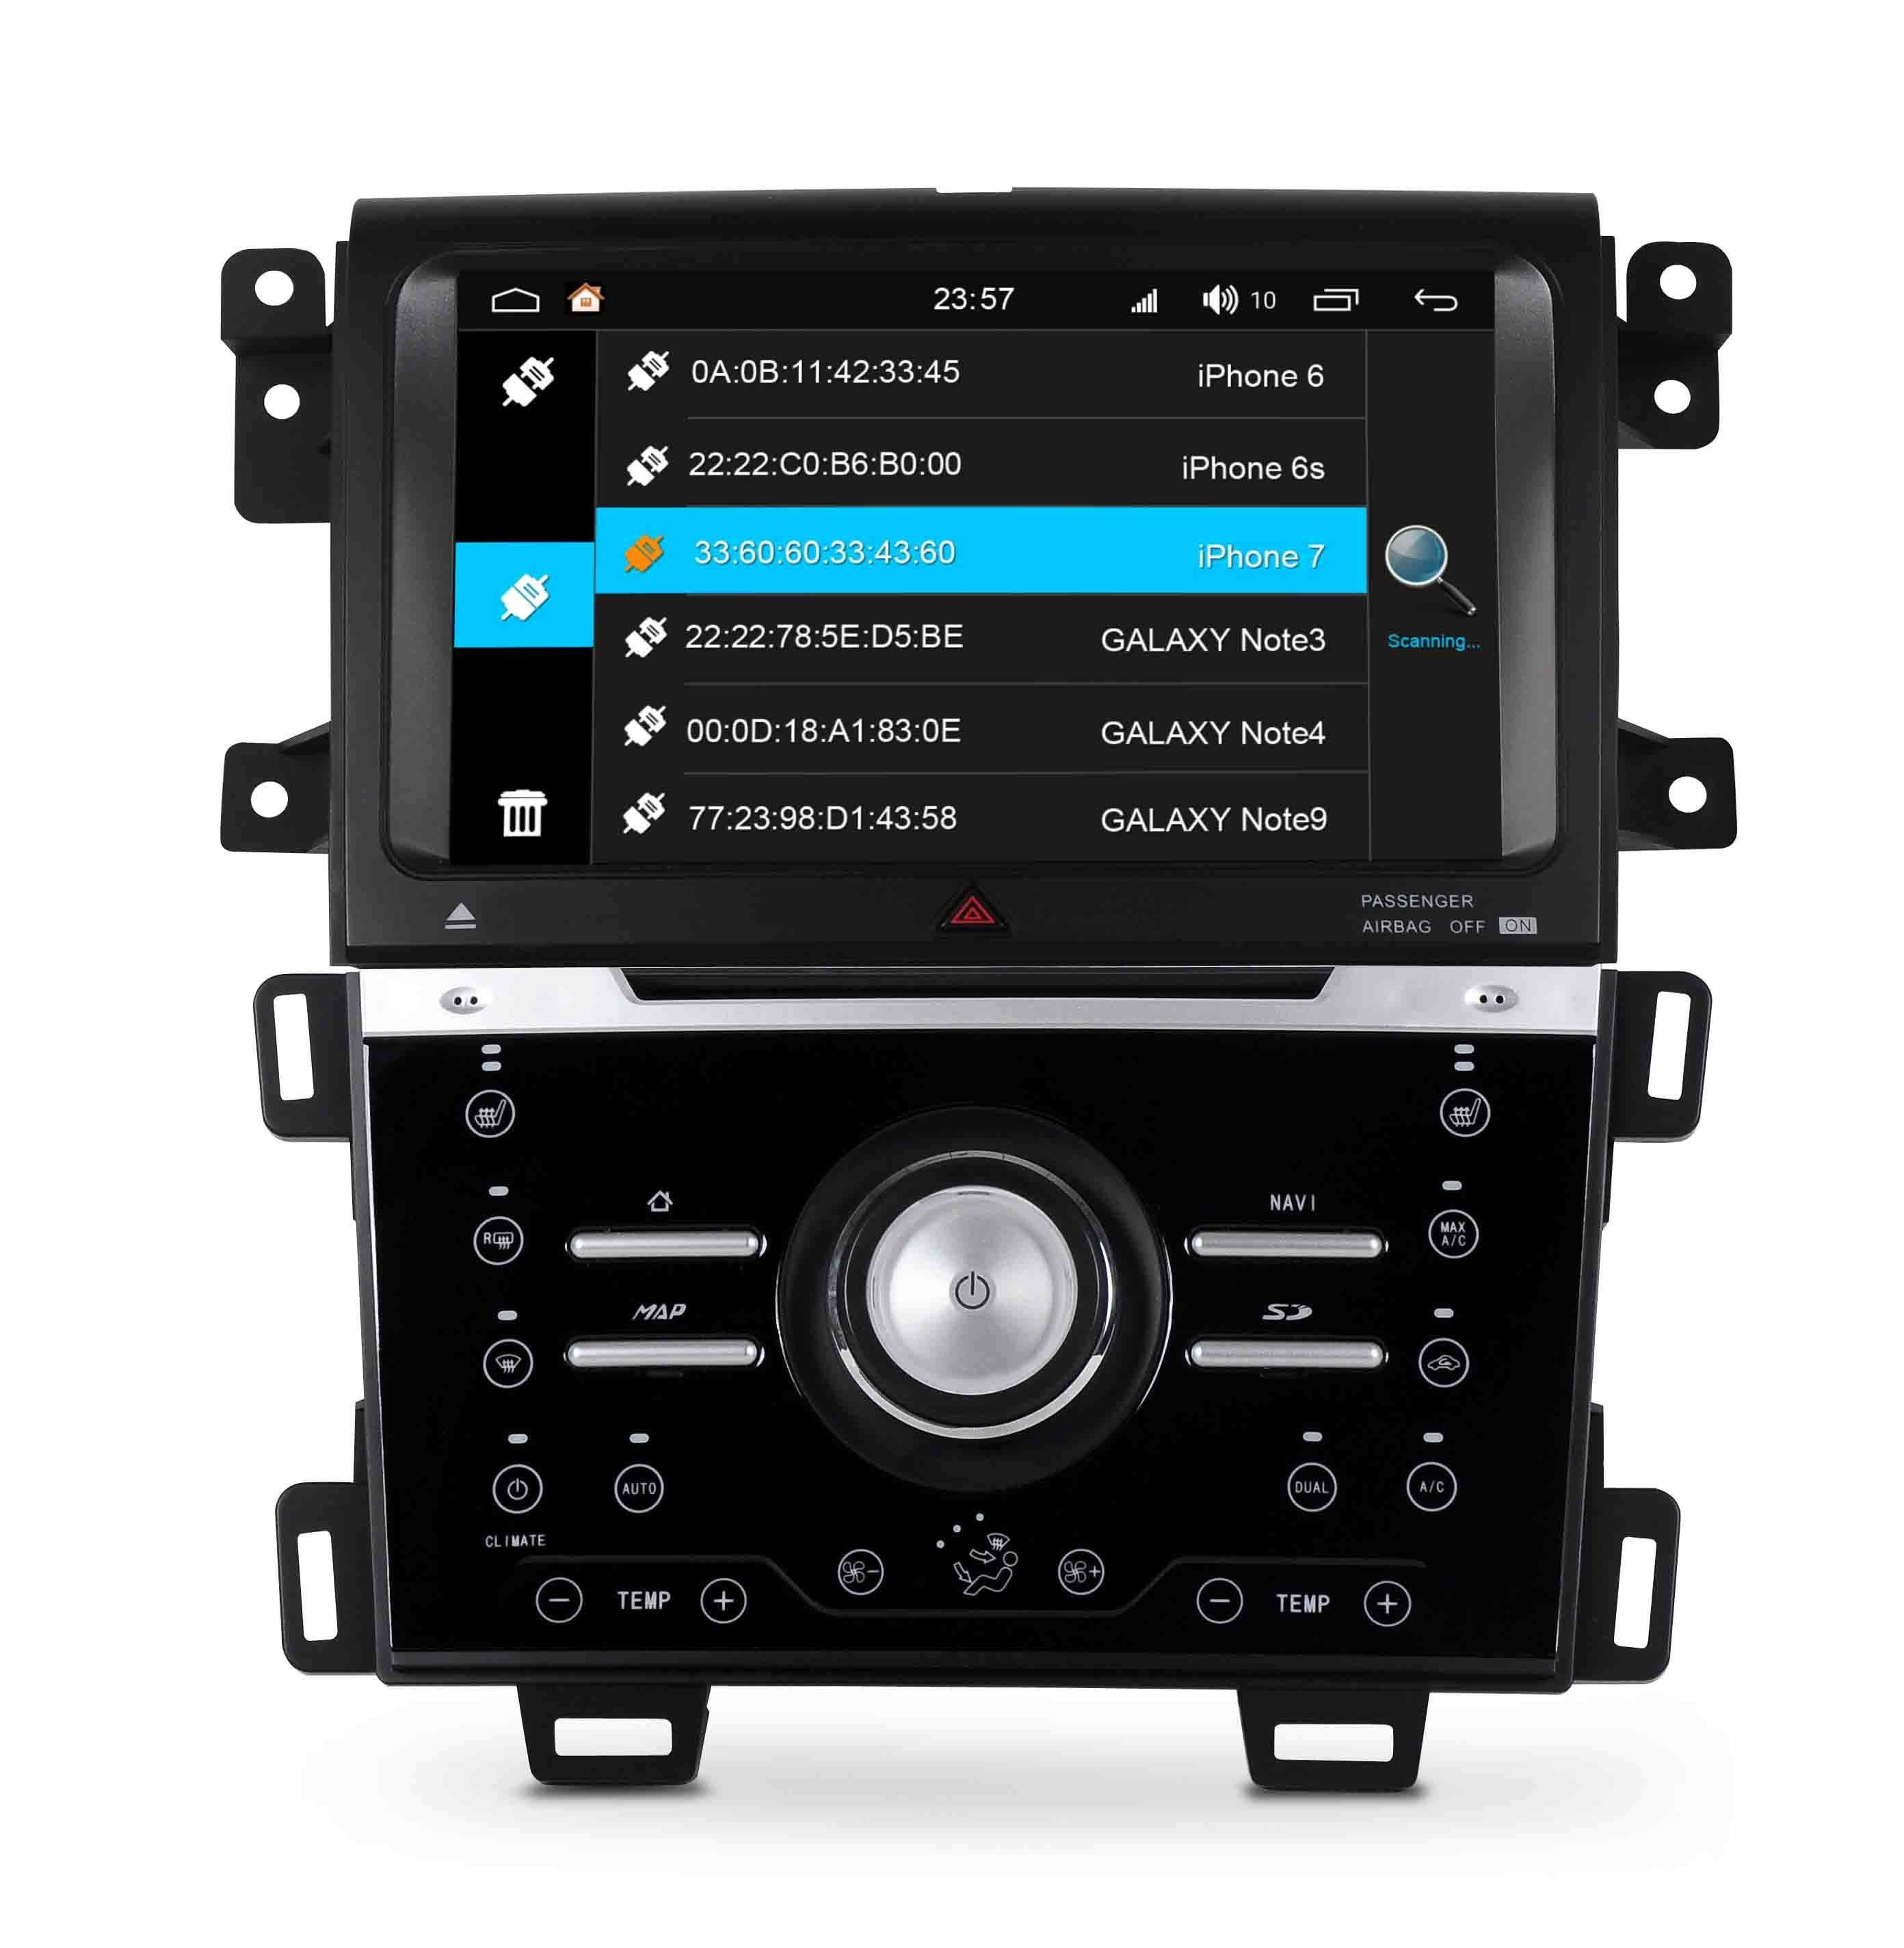 Car Radio with Gps Beautiful android 8 0 Car Gps Navigation Dvd Radio Stereo S200 for